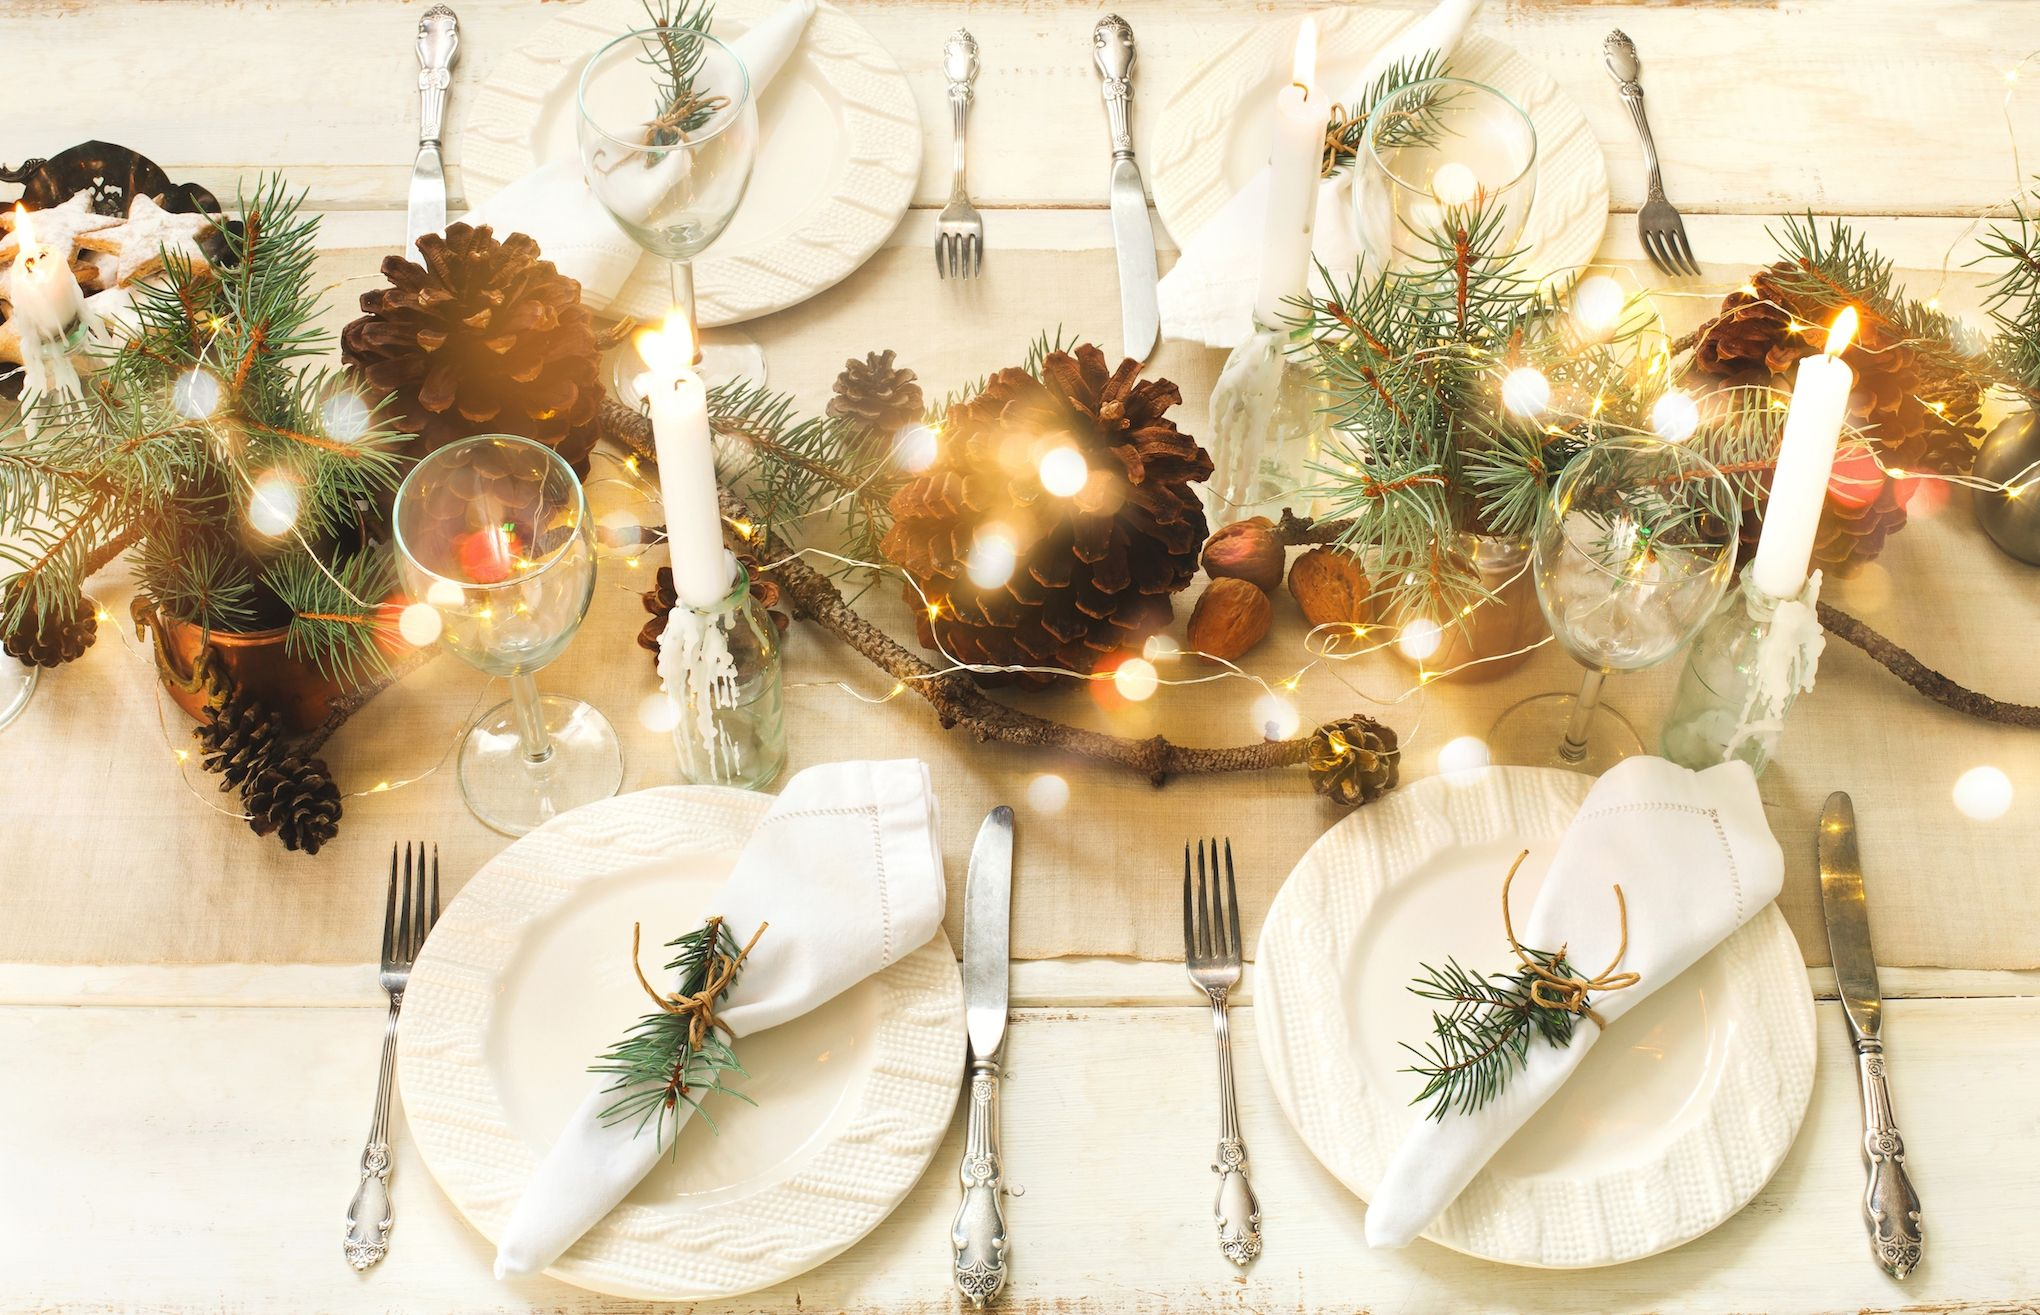 20+ Christmas Table Runners That Make Holiday Dining The Most Elegant